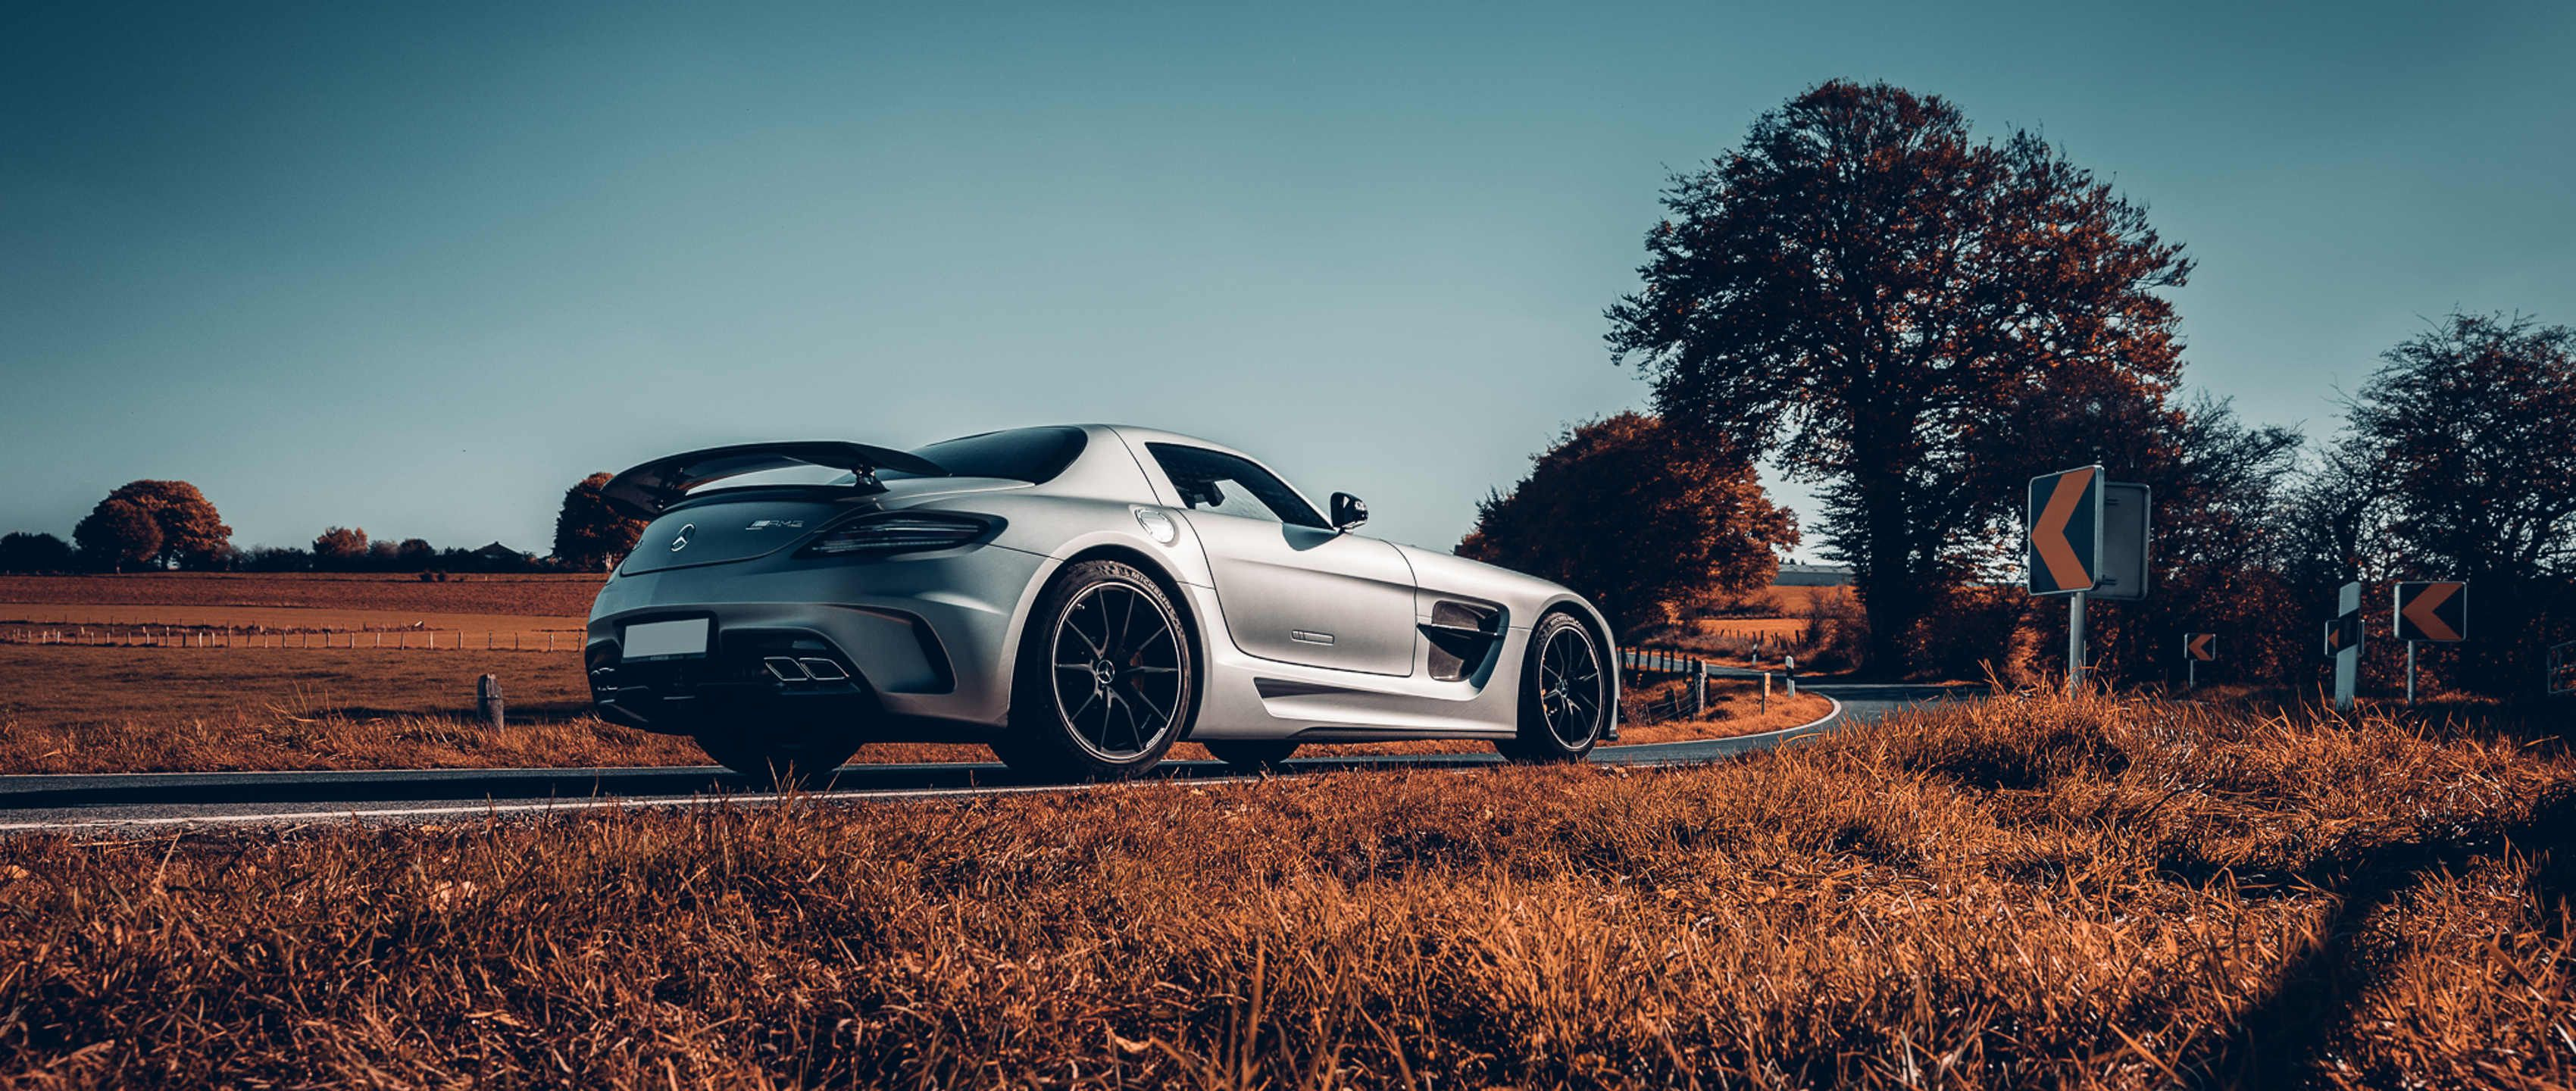 Mercedes Benz Sls Amg Black Series Photoshoot What Is Your